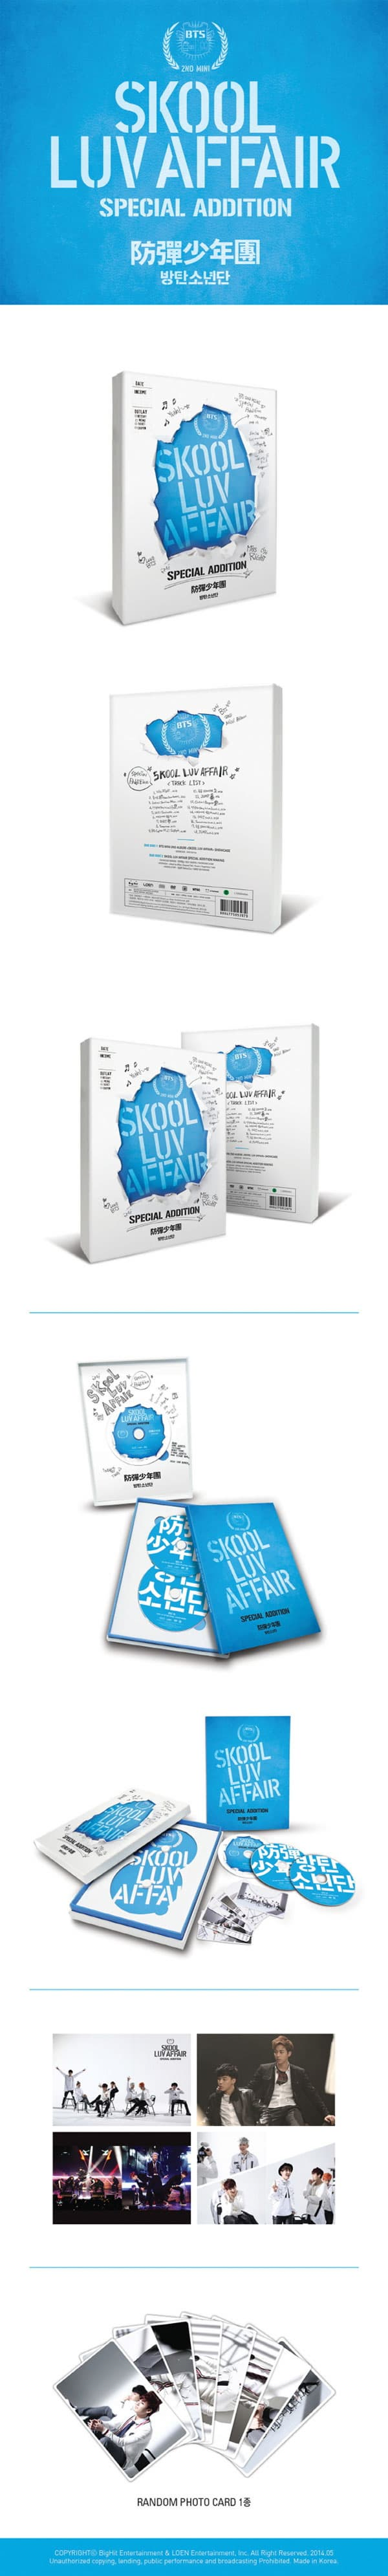 03-BTS---SKOOL-LUV-AFFAIR-SPECIAL-ADDITION_02.jpg